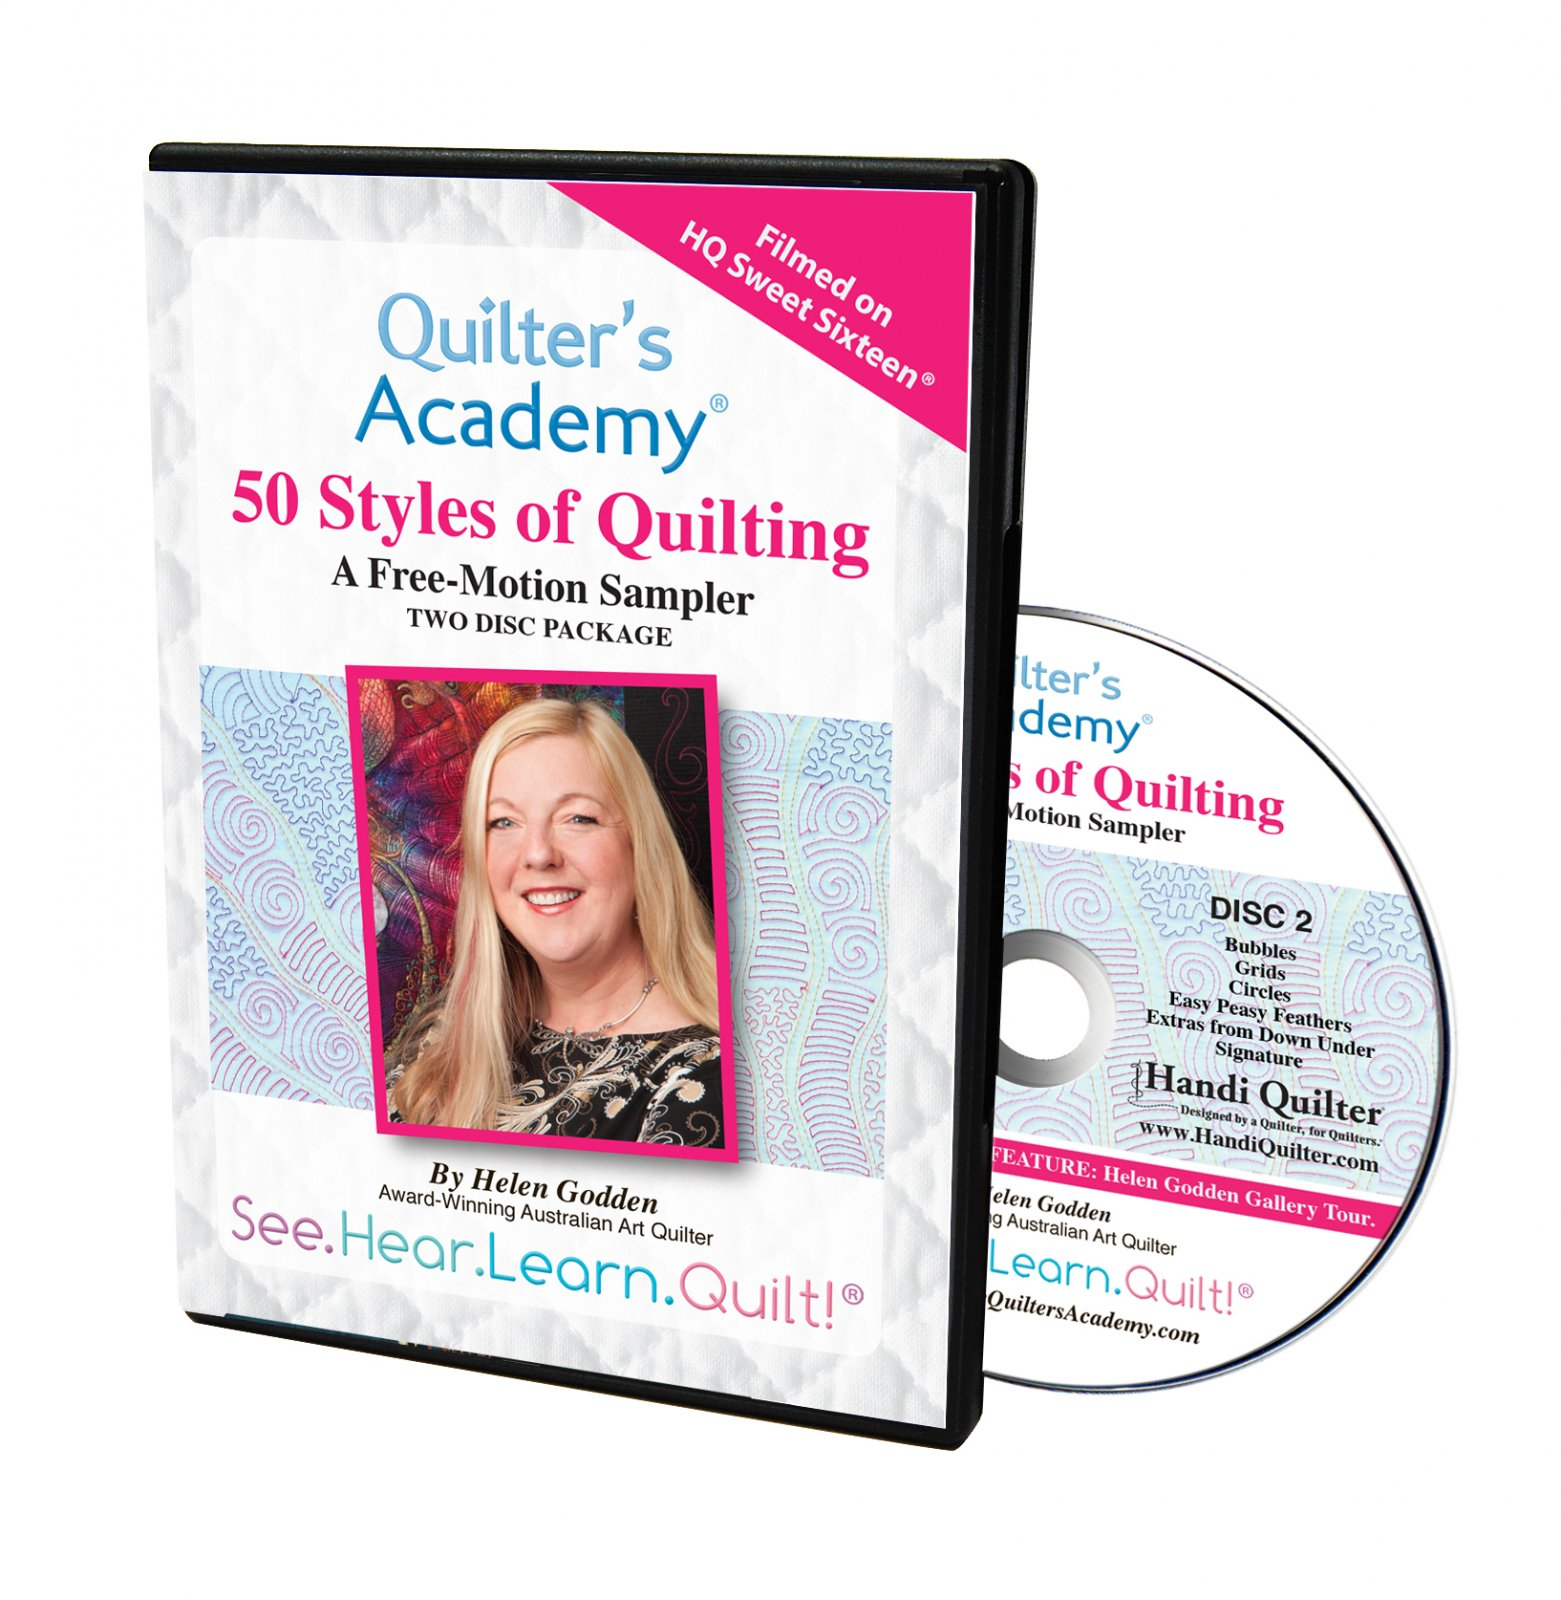 SOFT- 50 Styles Of Quilting (2 DVD Set) A Free-Motion Sampler